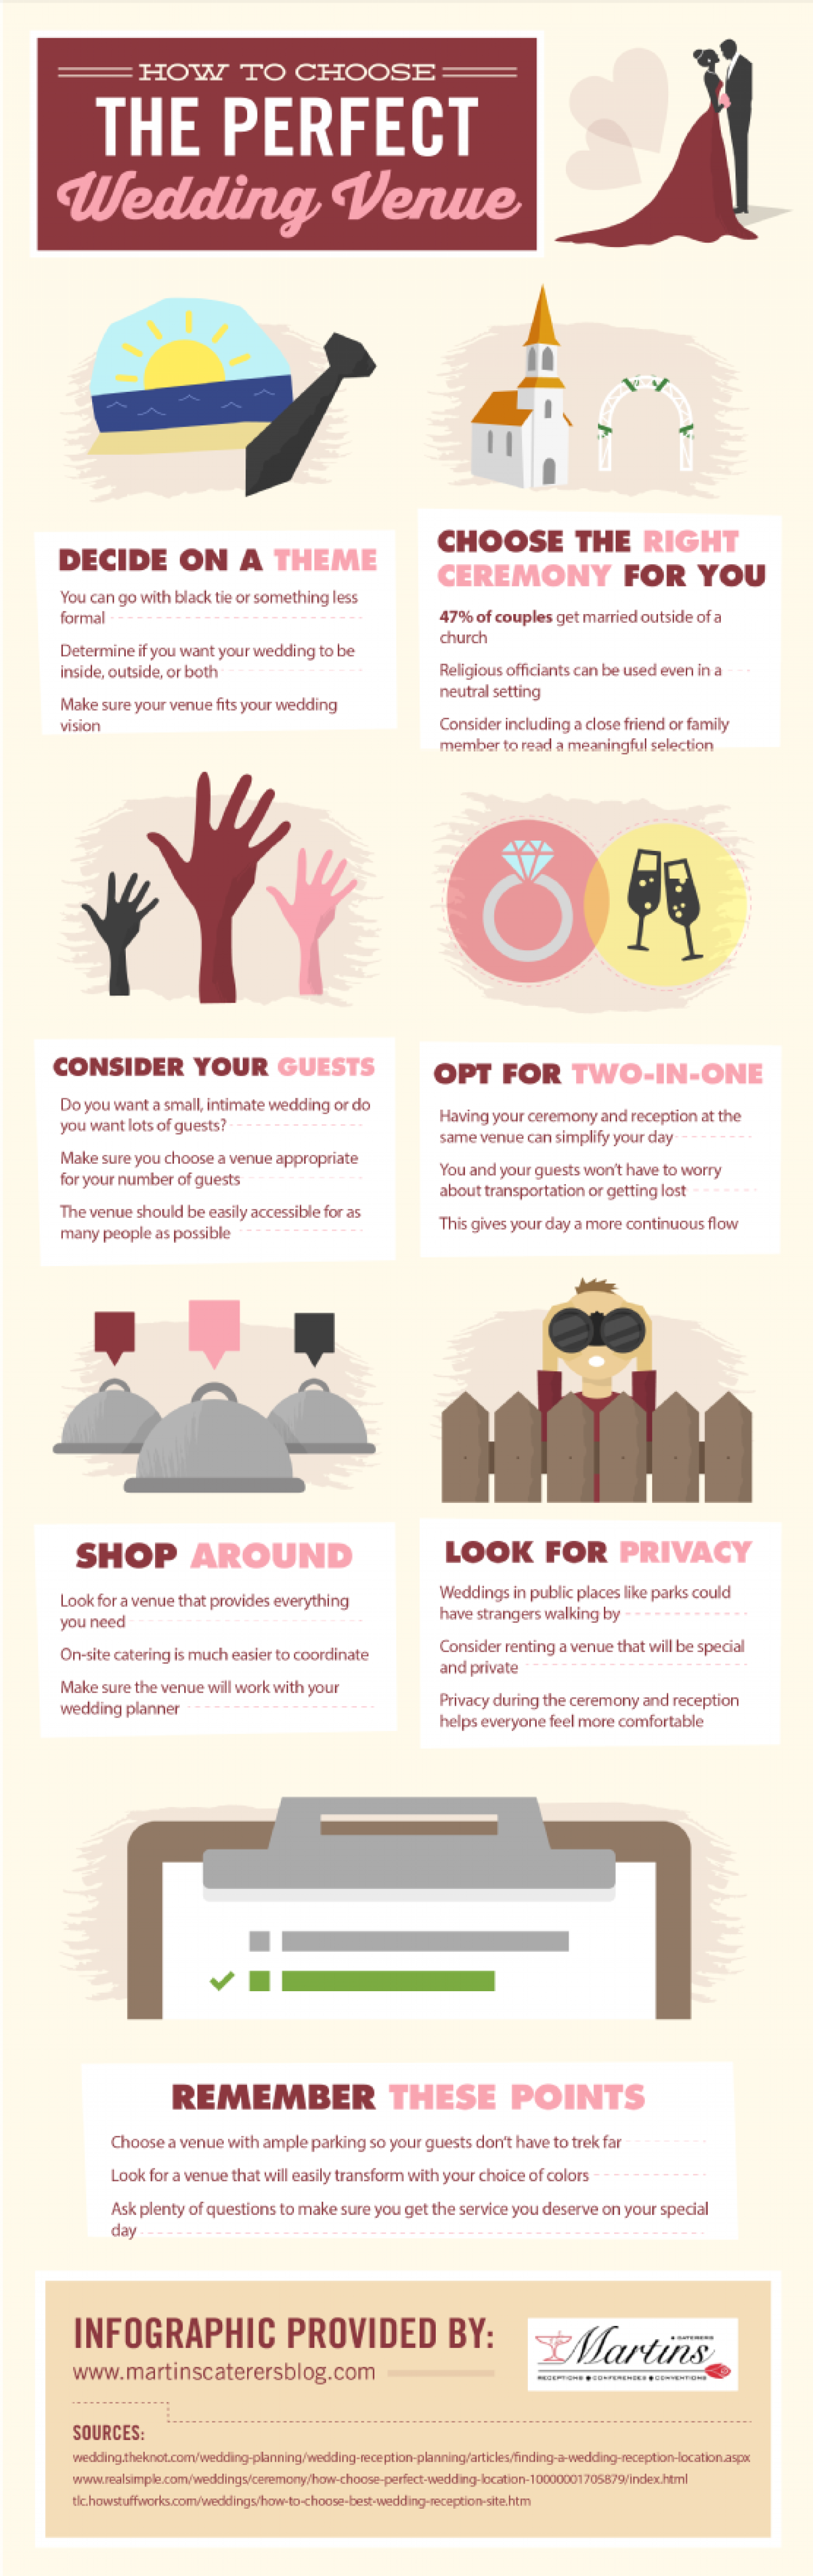 How to Choose the Perfect Wedding Venue Infographic